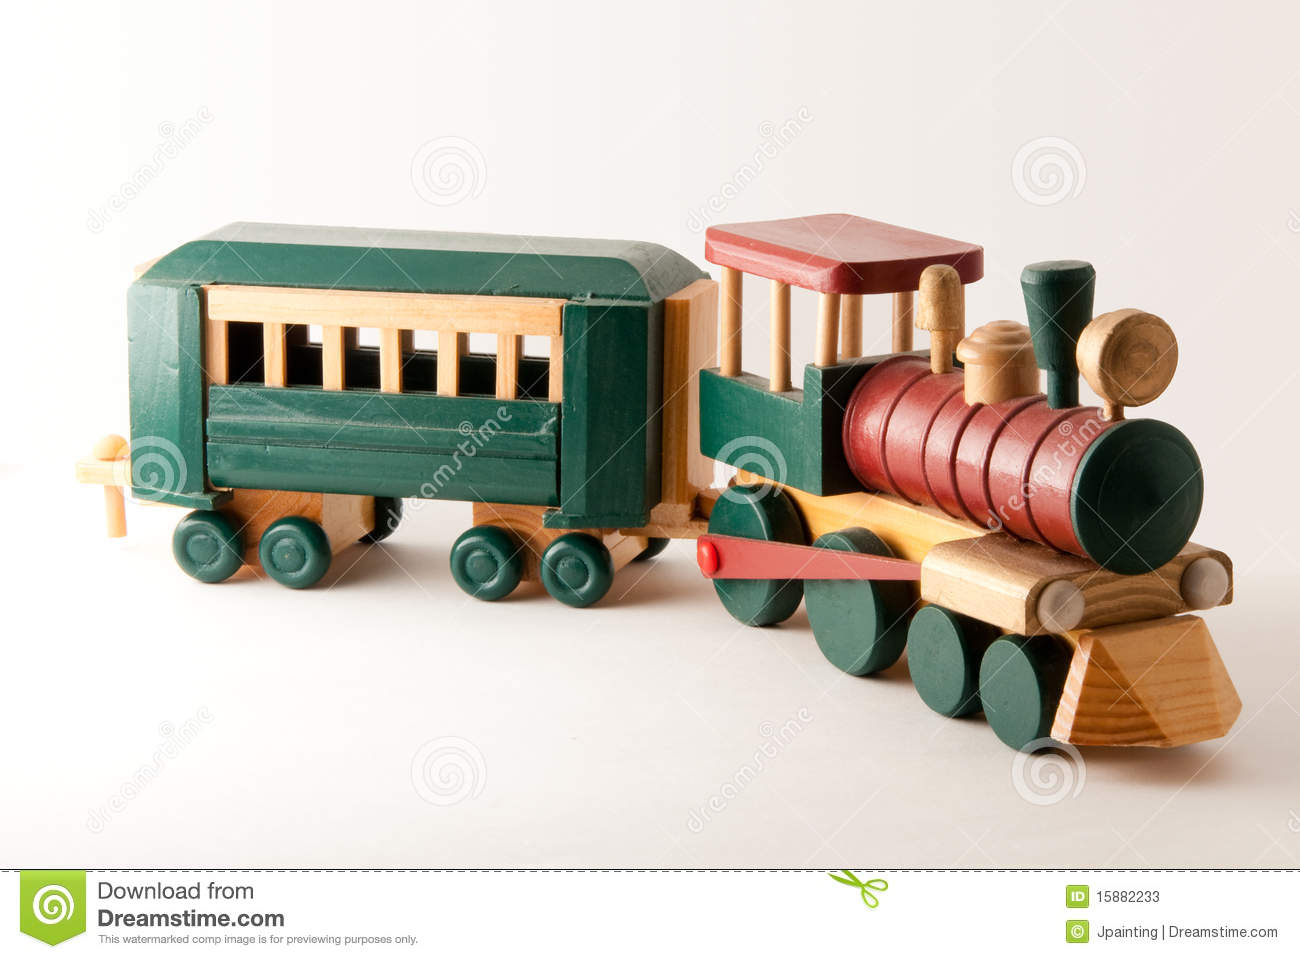 Toy Wooden Train Engine Stock Photos - Image: 15882233